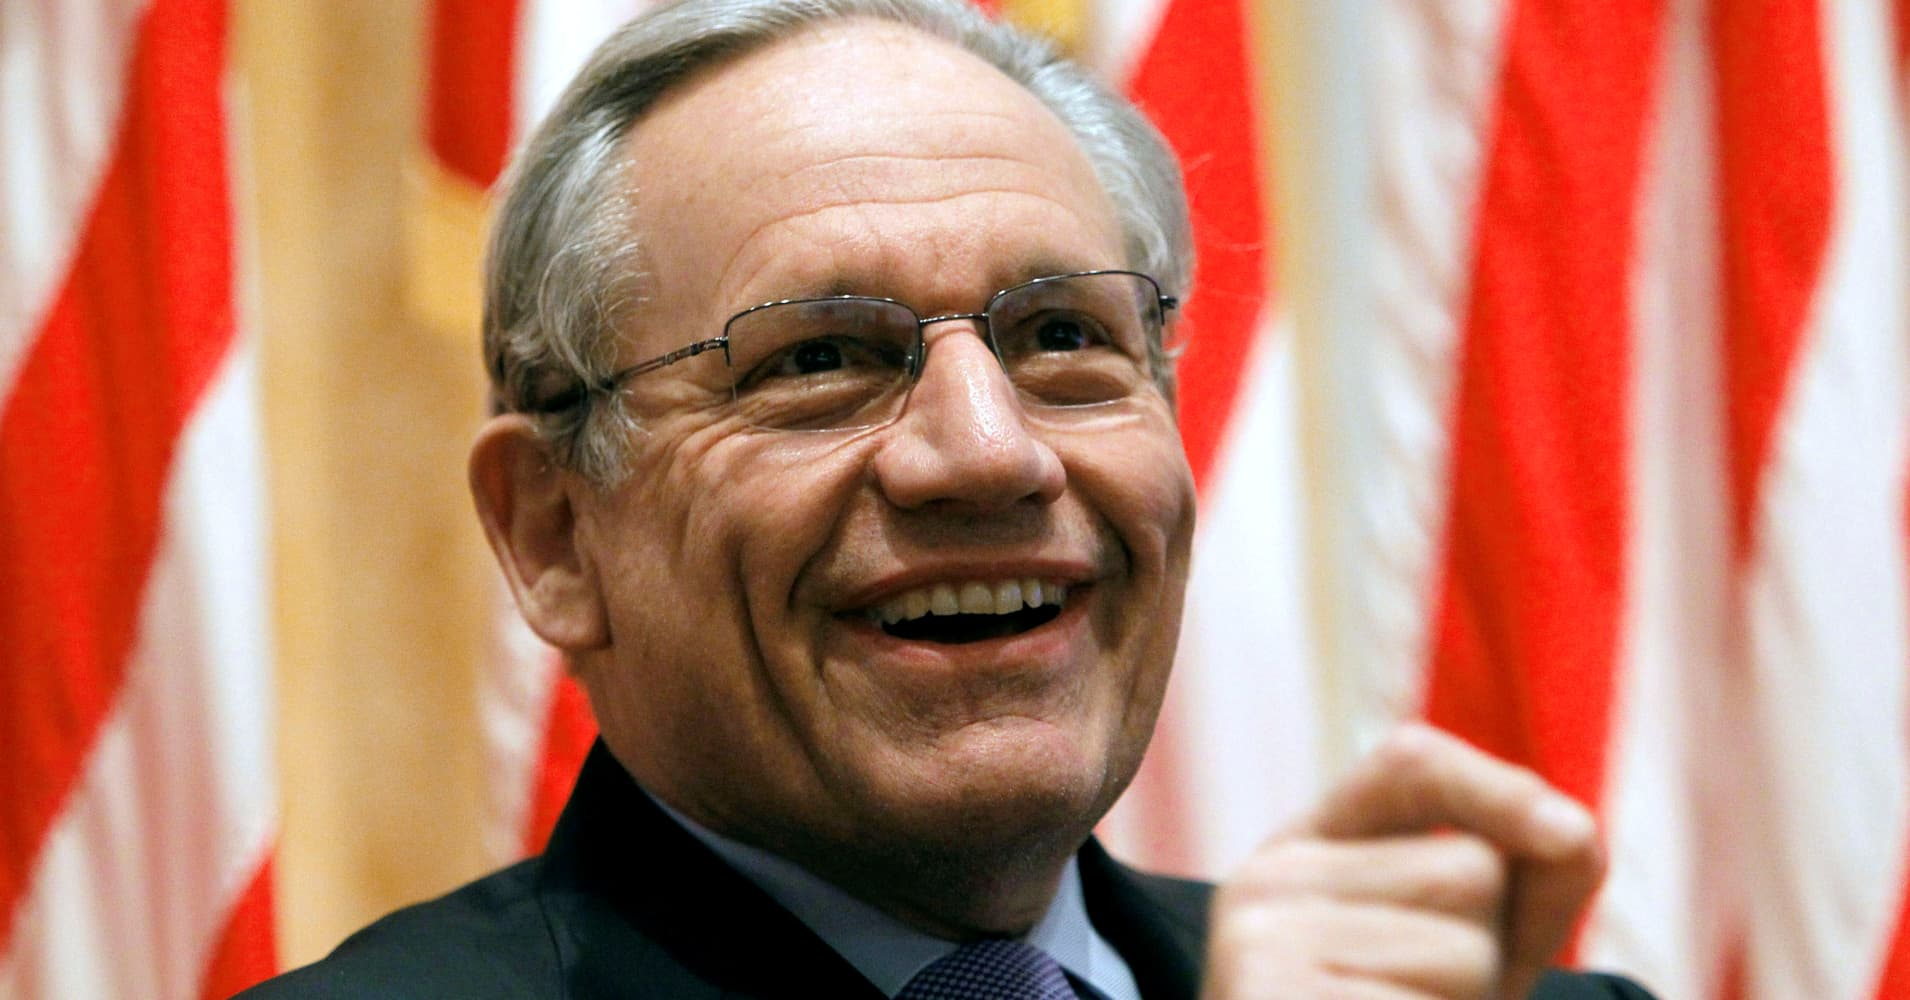 Bob Woodward's 'Fear' sells 750,000 copies in 1st day, breaks Simon & Schuster's pre-order sales record